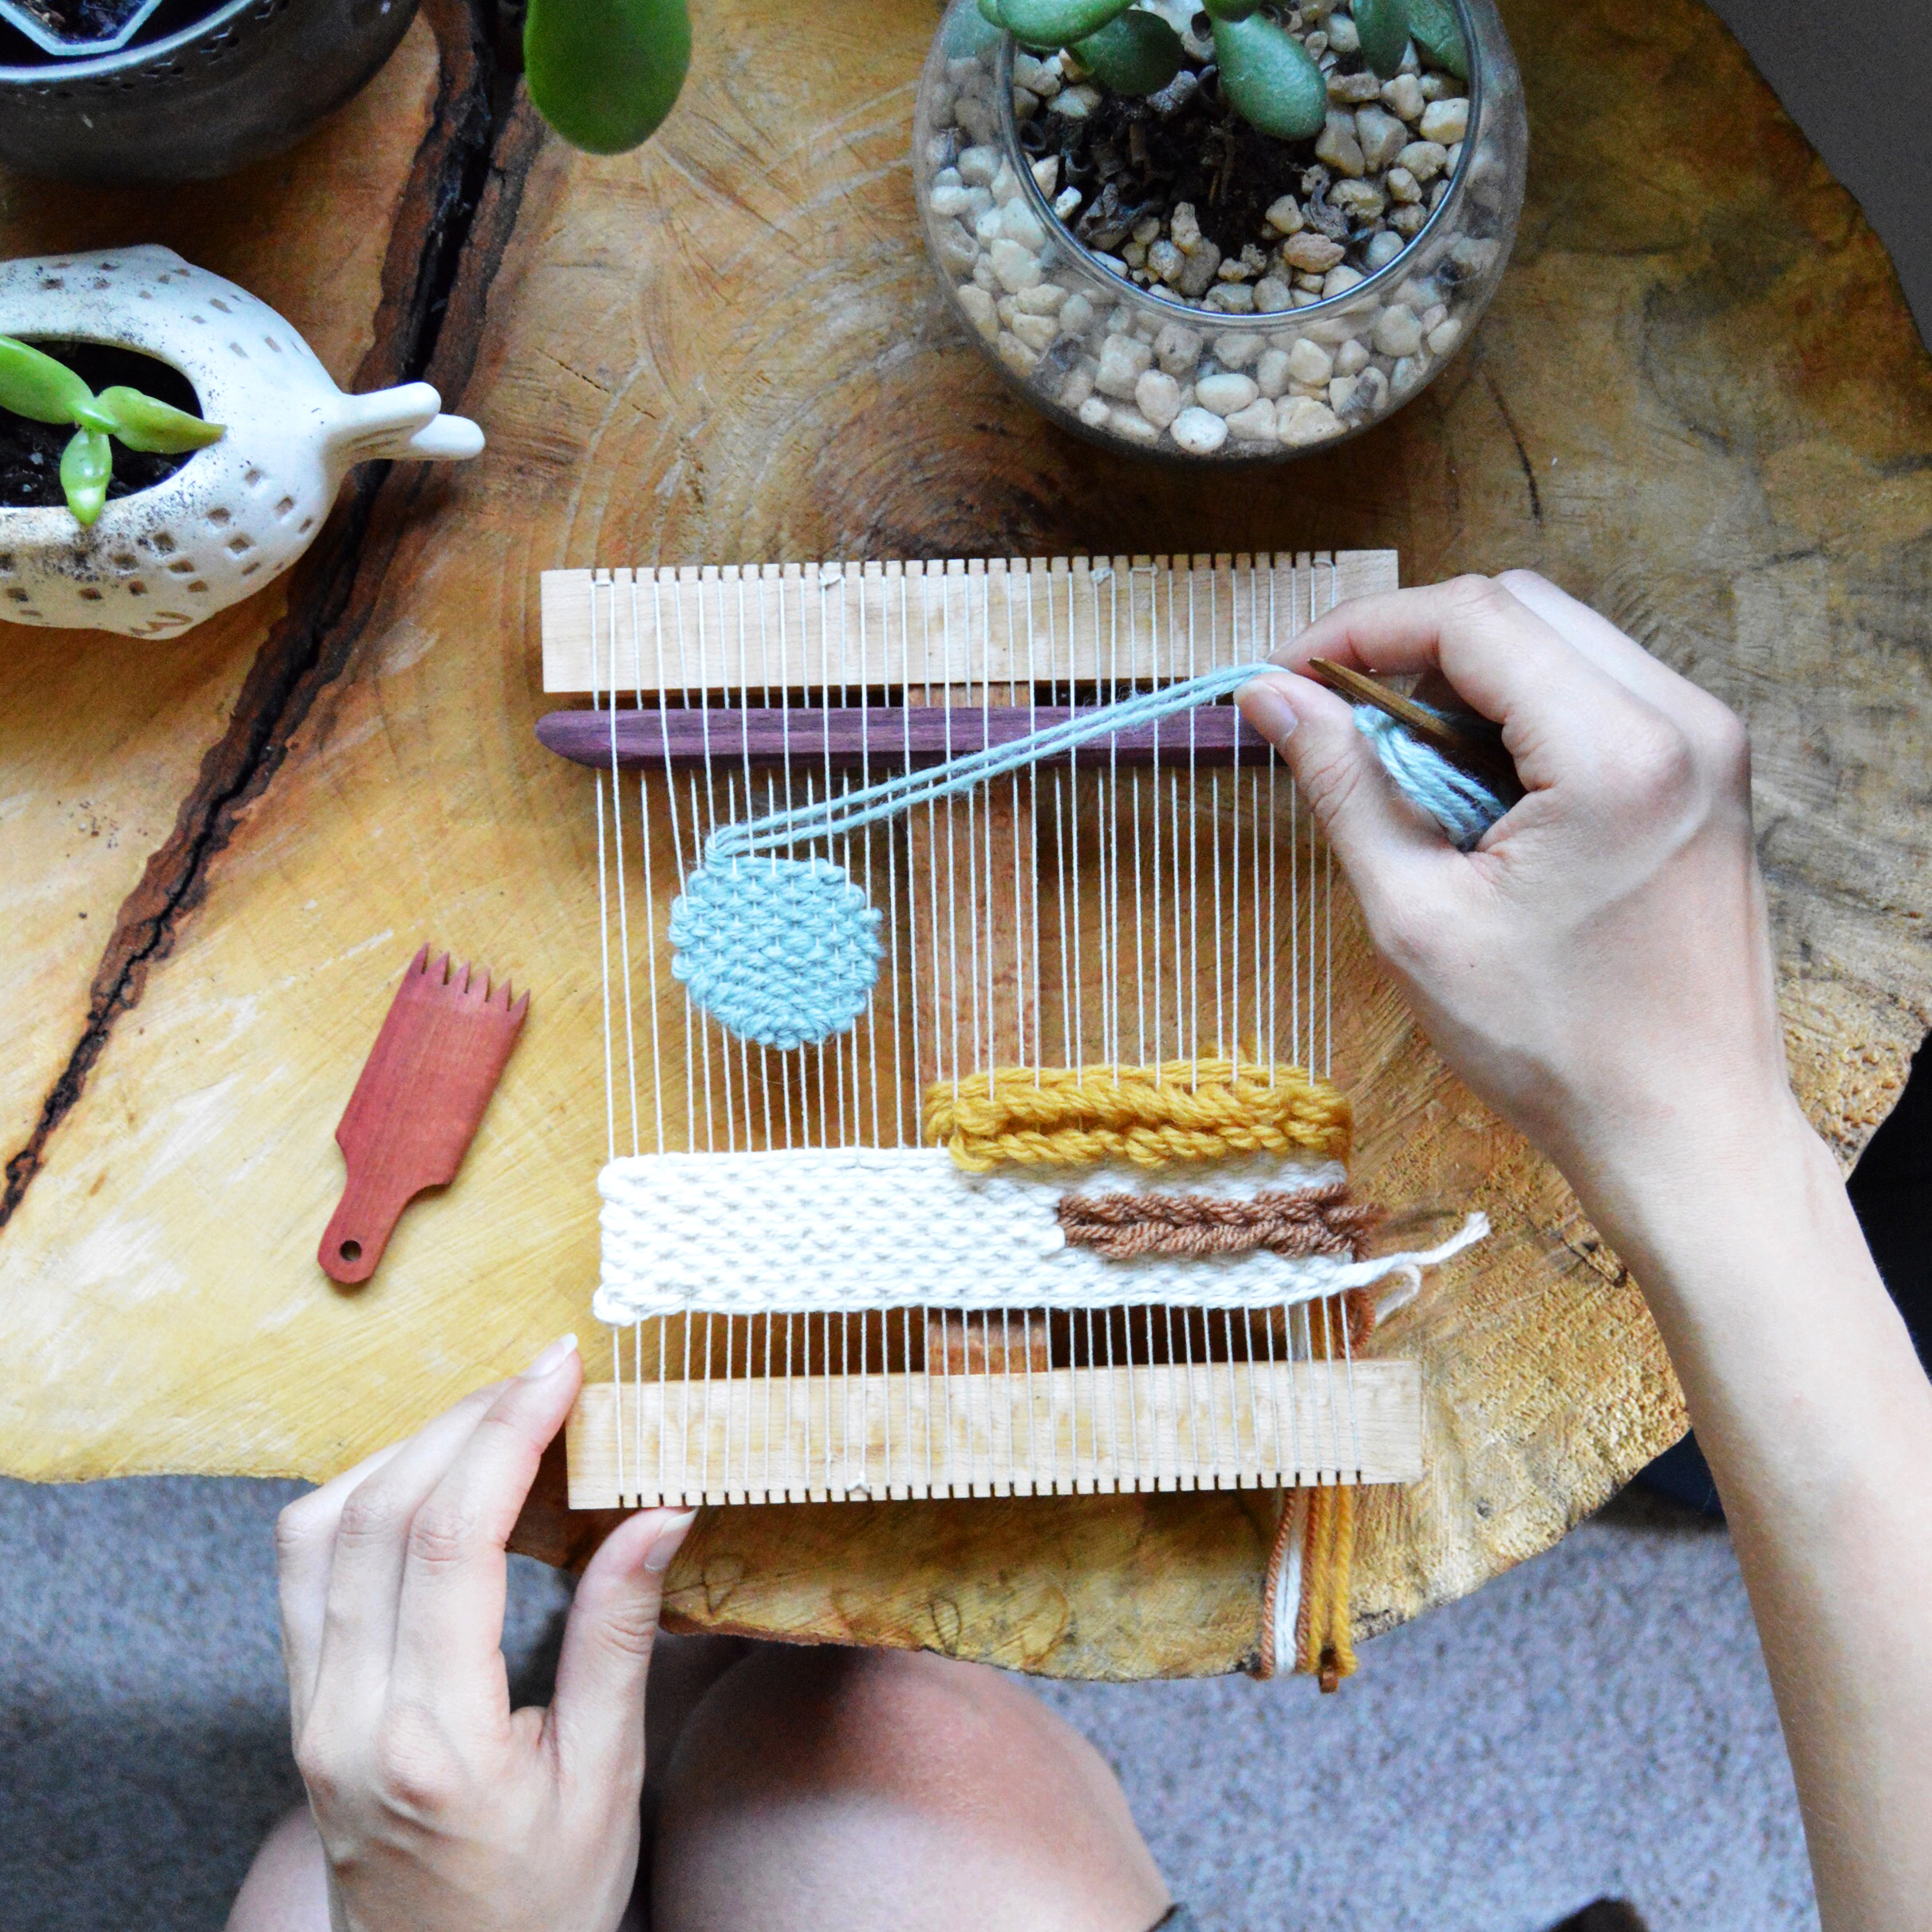 Let's make woven wall hangings with Melissa Jenkins. In this 3.5 hour workshop, you'll learn the basics of tapestry weaving from getting to know your weaving tools and planning your design to basic weaving and finishing techniques...